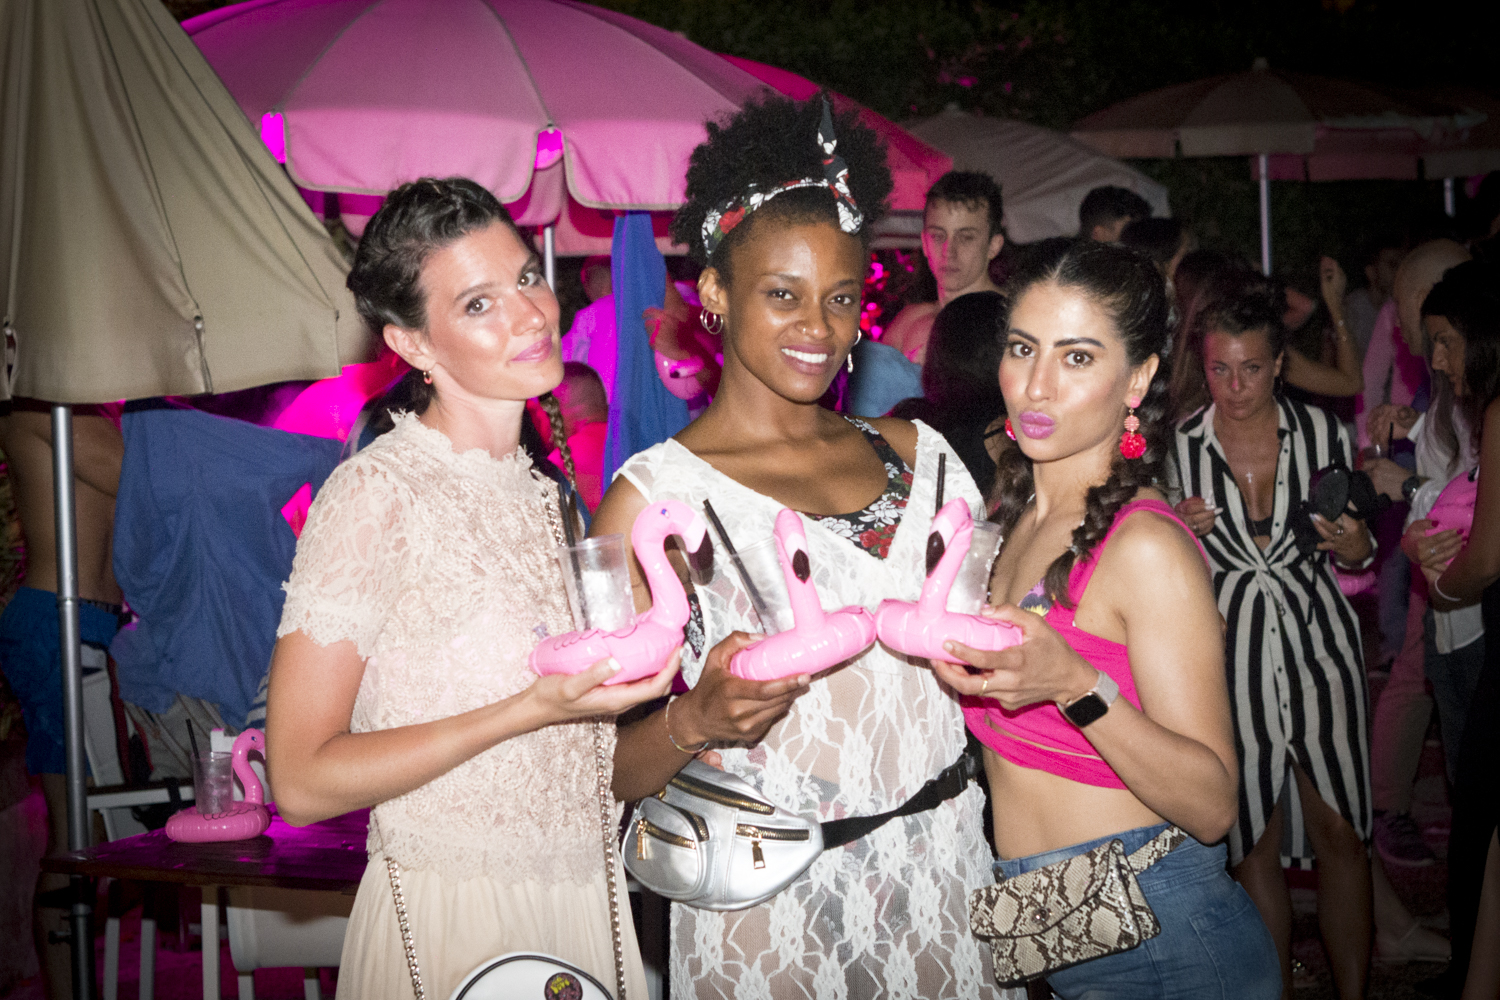 Notte Rosa | Pool Party at Harbour Club YOUparti